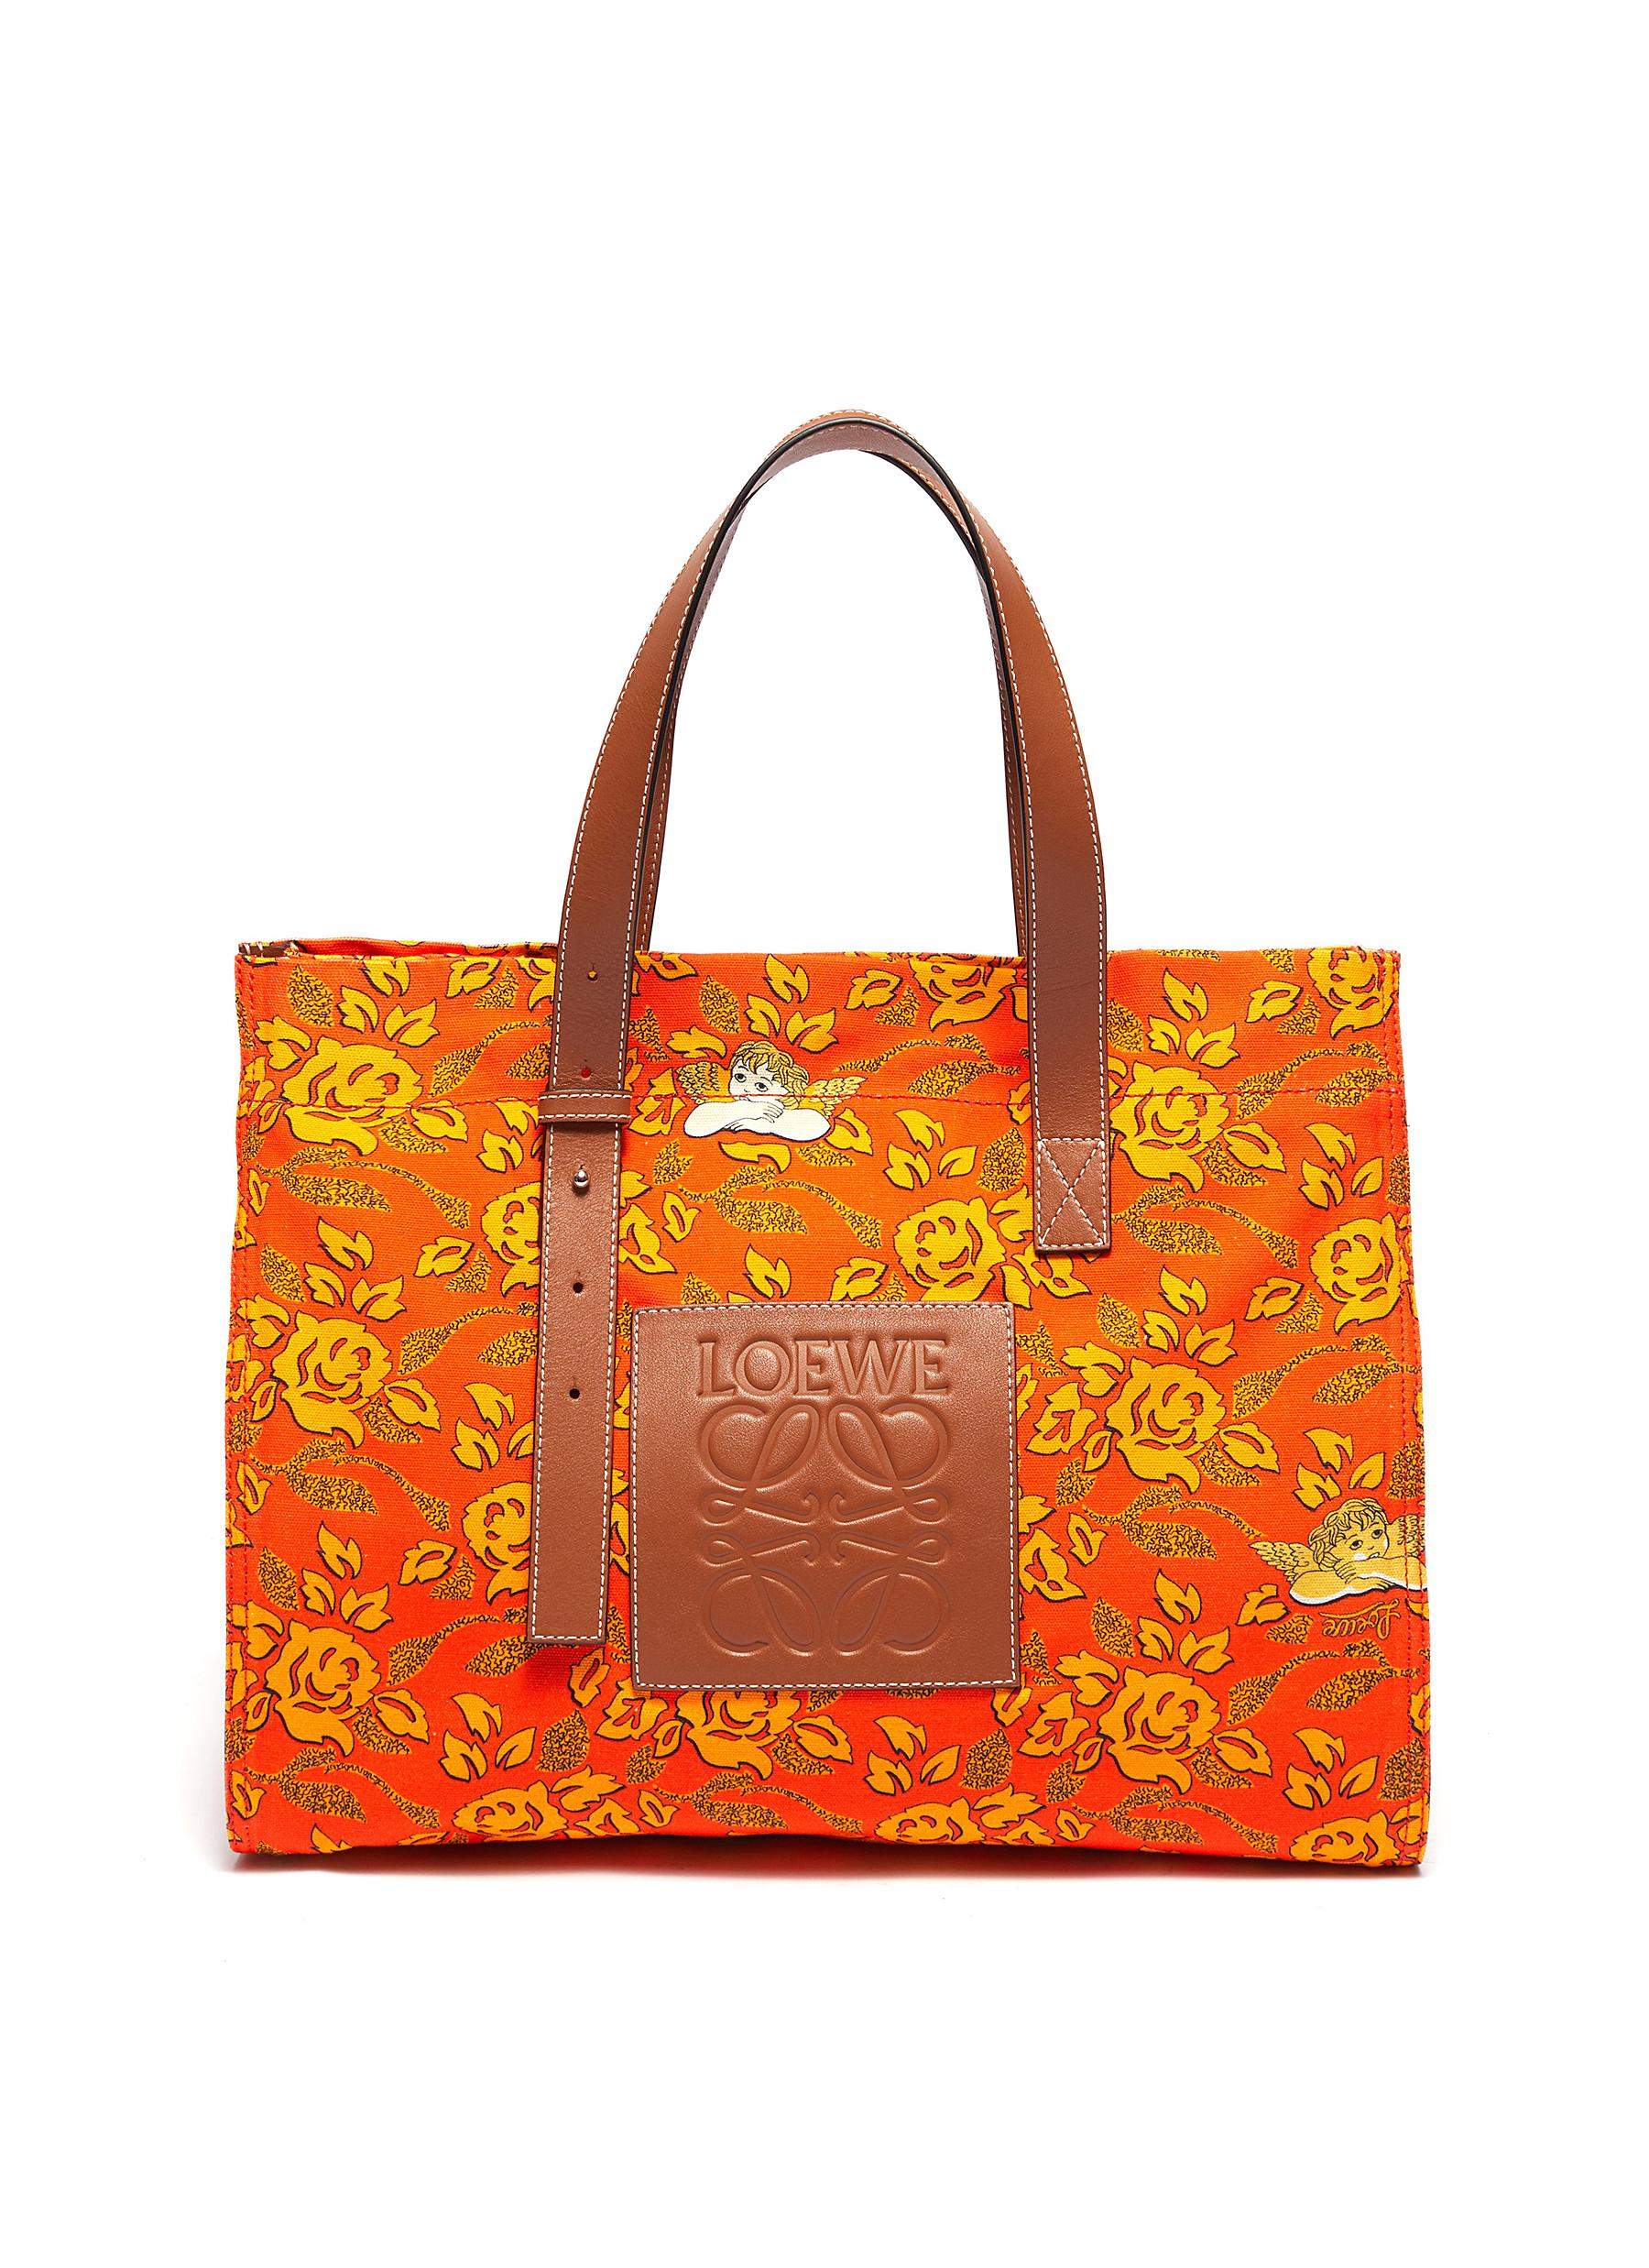 37c2c2d1e24eeb Main View - Click To Enlarge - LOEWE - x Paula's Ibiza leather logo patch  floral